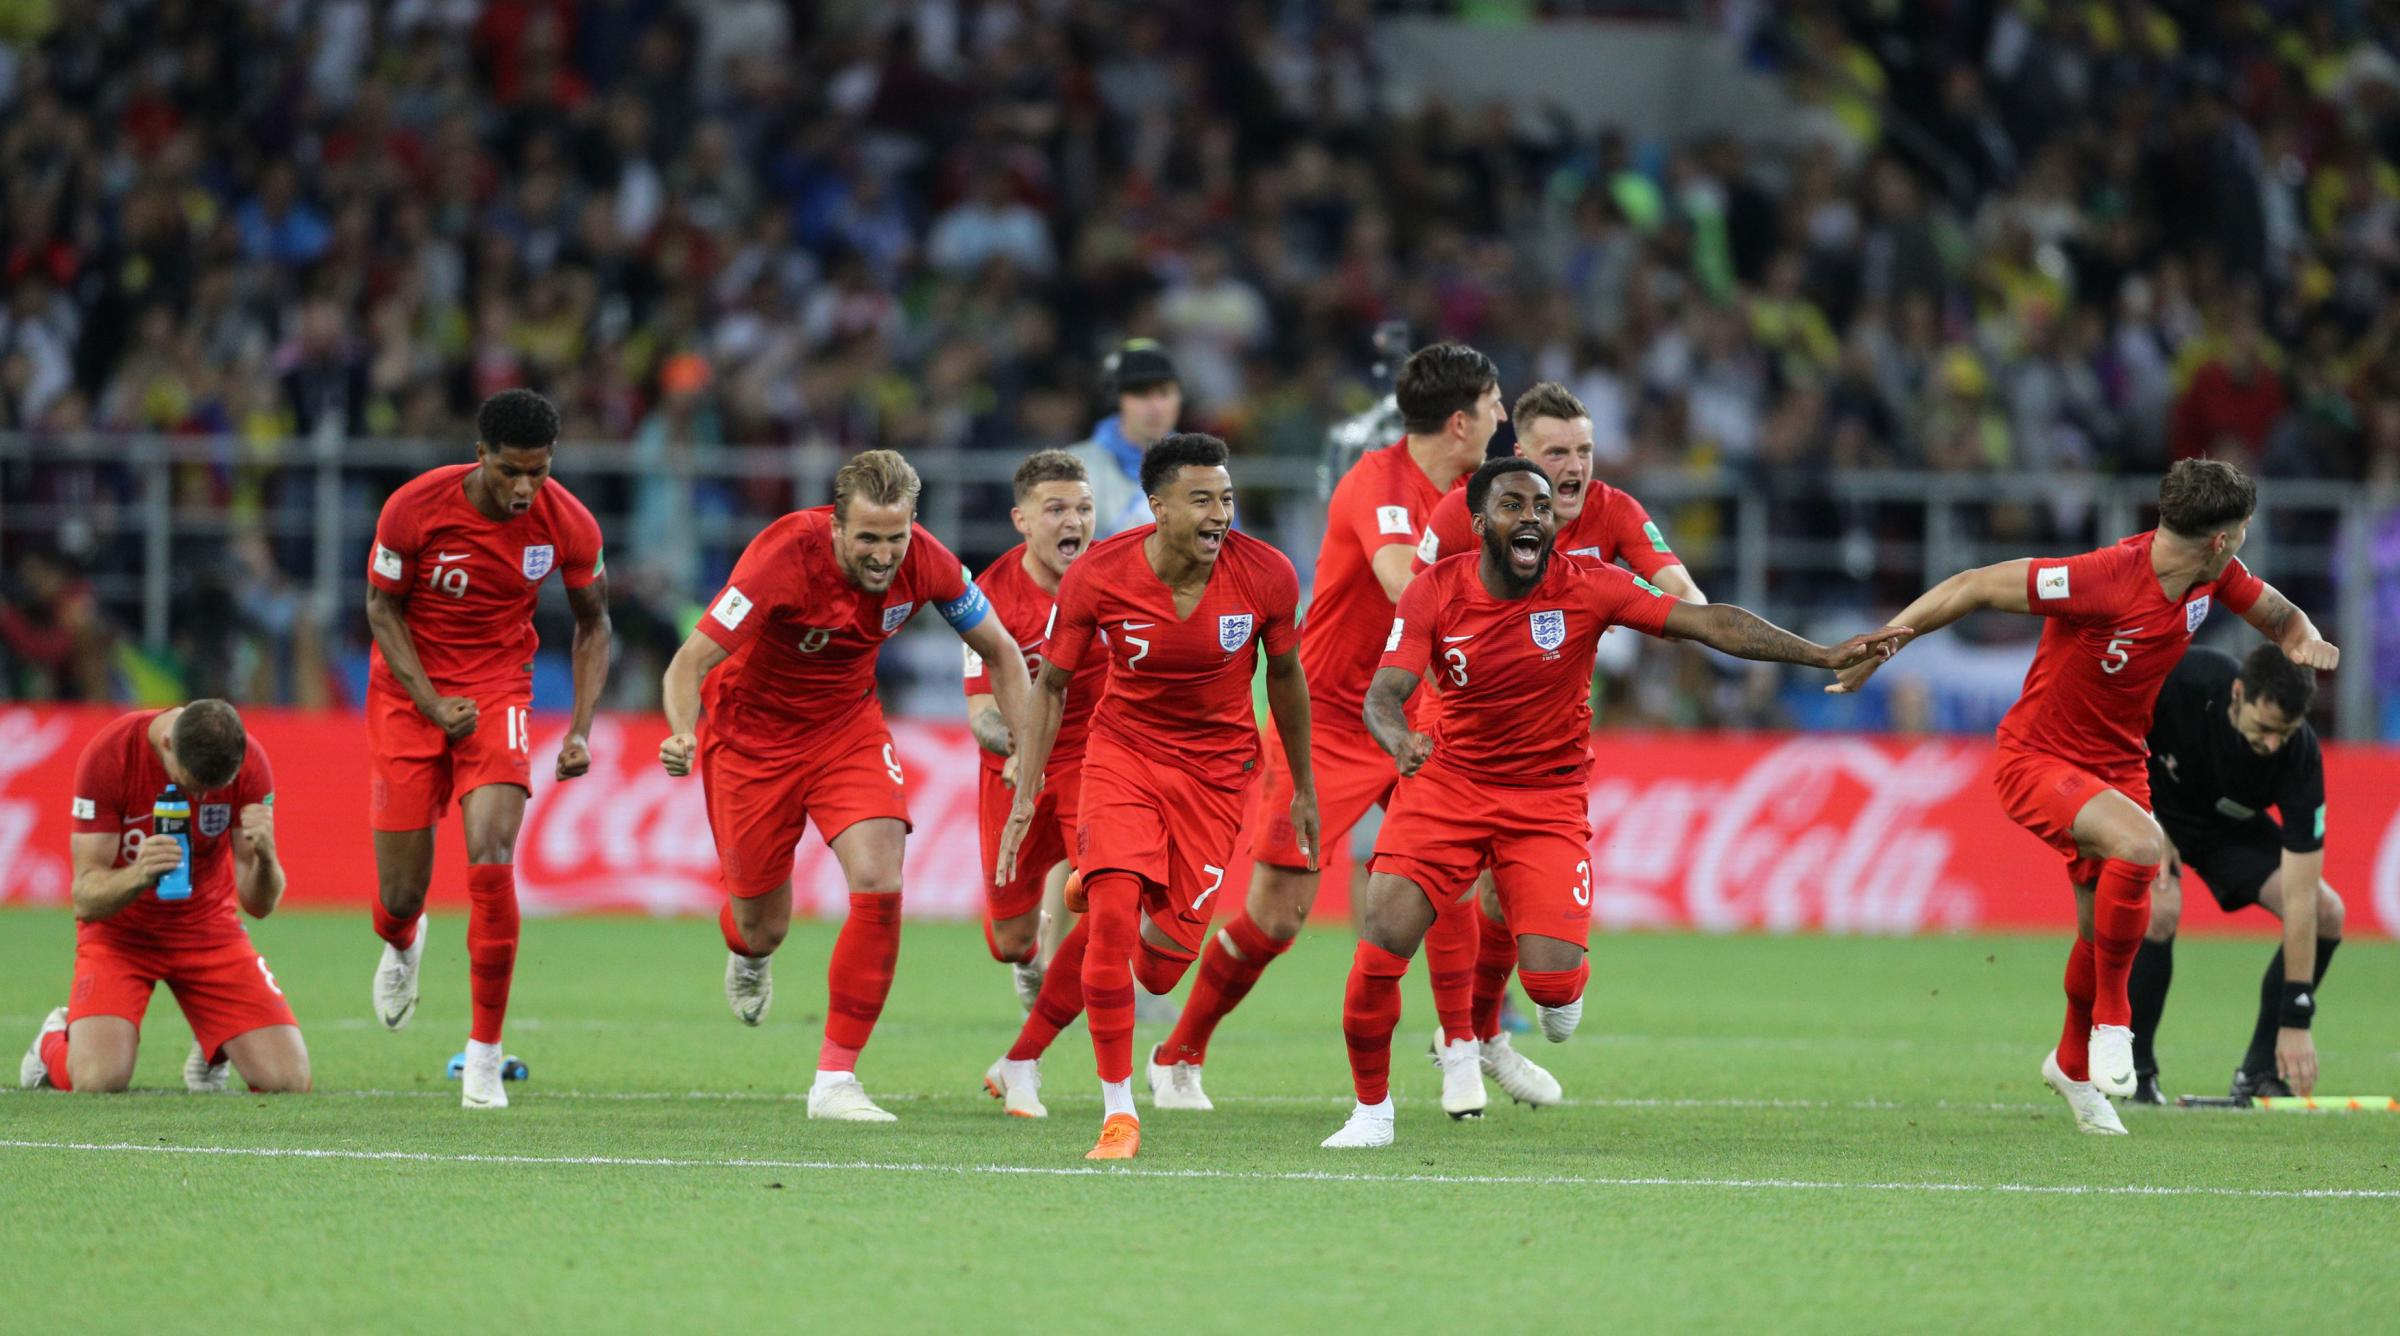 England celebrate after beating Colombia on penalties at the World Cup